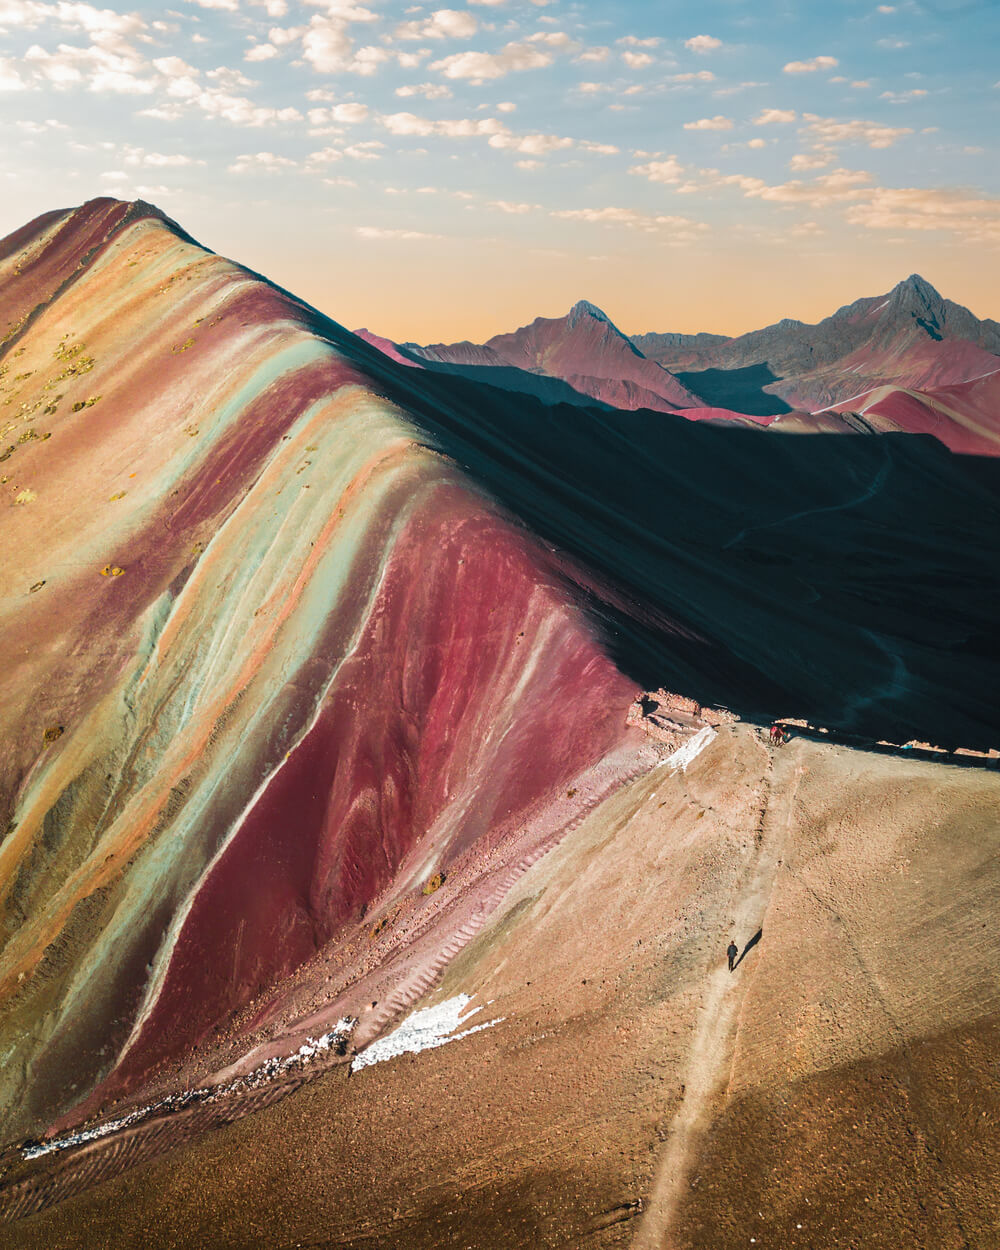 image of Vinicunca or Rainbow Mountain in Peru. Image by Jordan Hammond